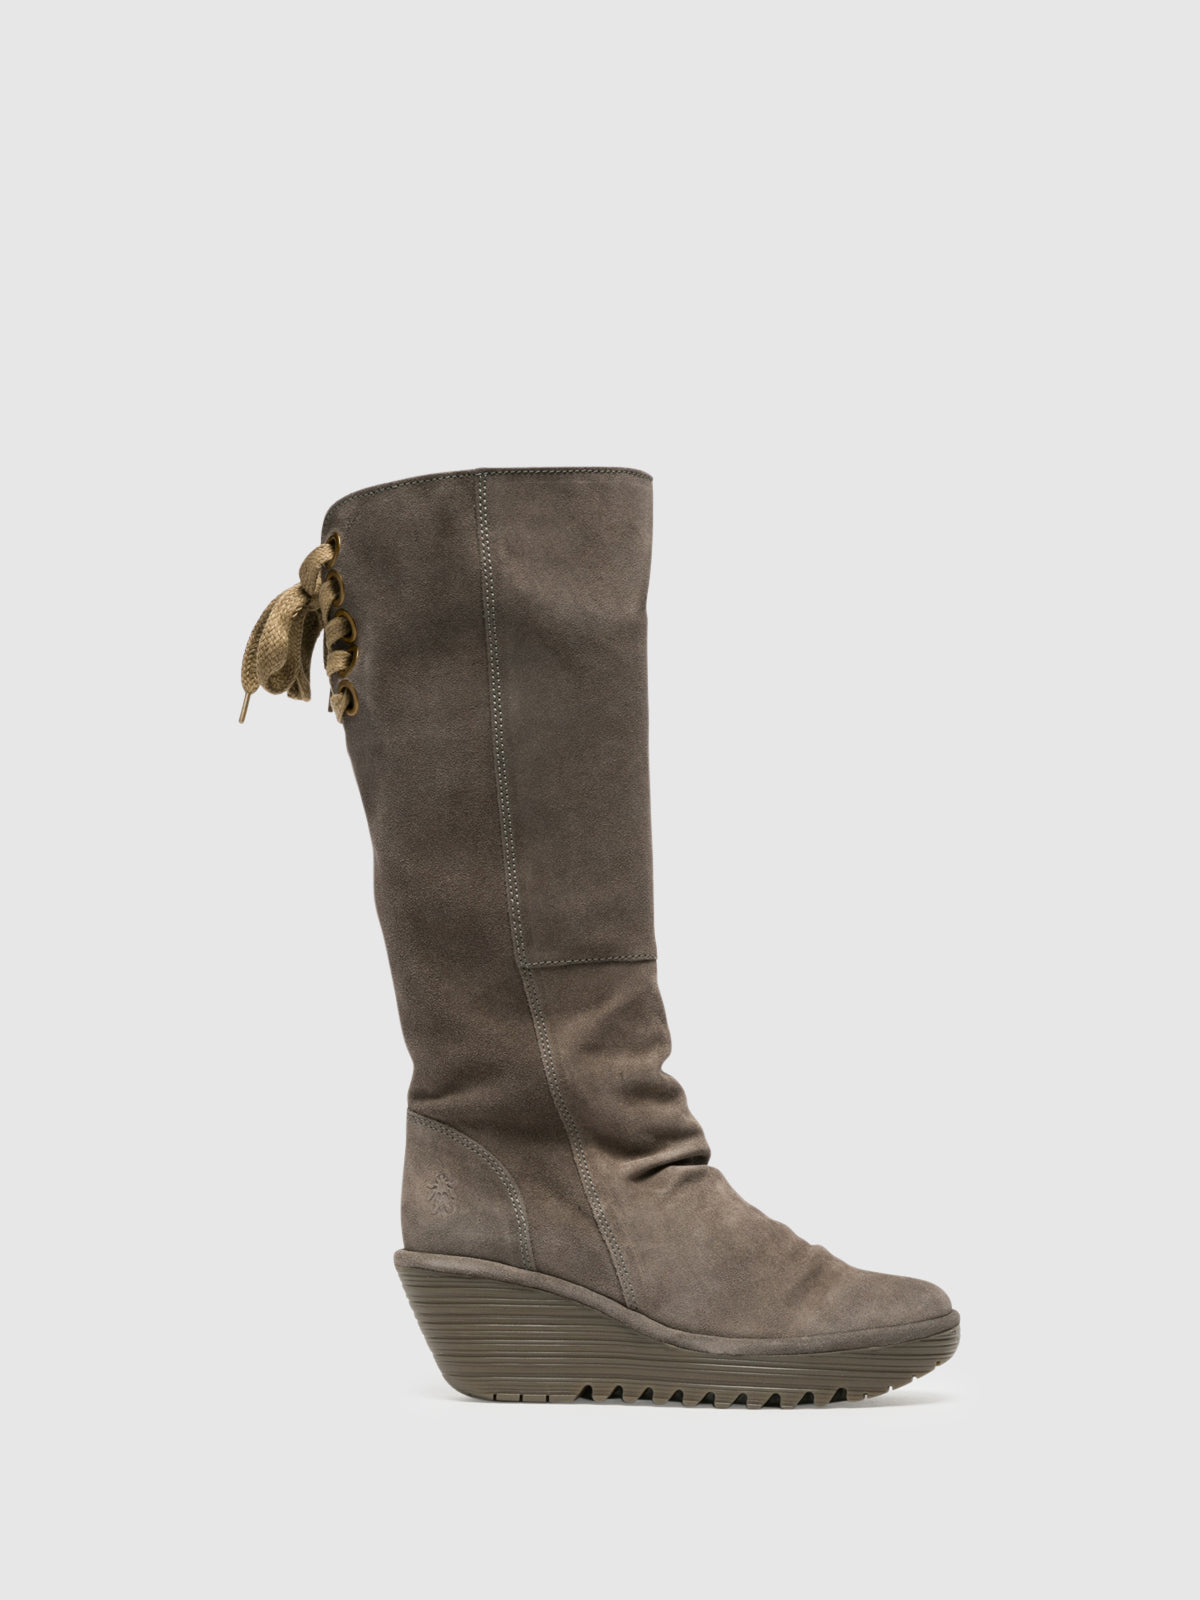 Fly London Botas Altas en color Gris Claro